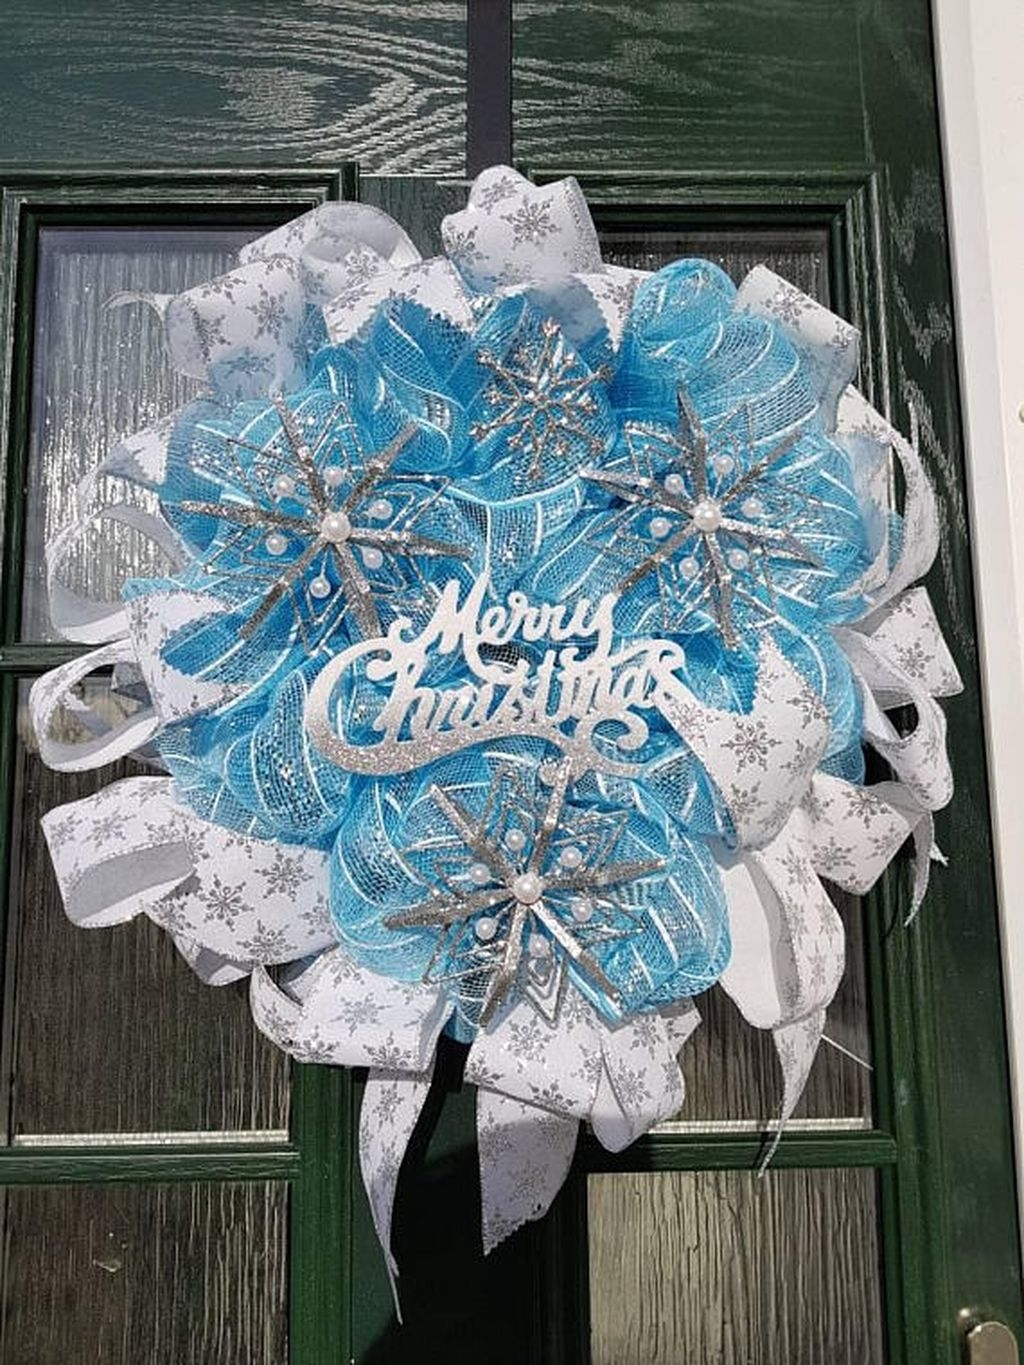 Amazing Silver And Blue Christmas Decoration Ideas For Christmas And New Year28